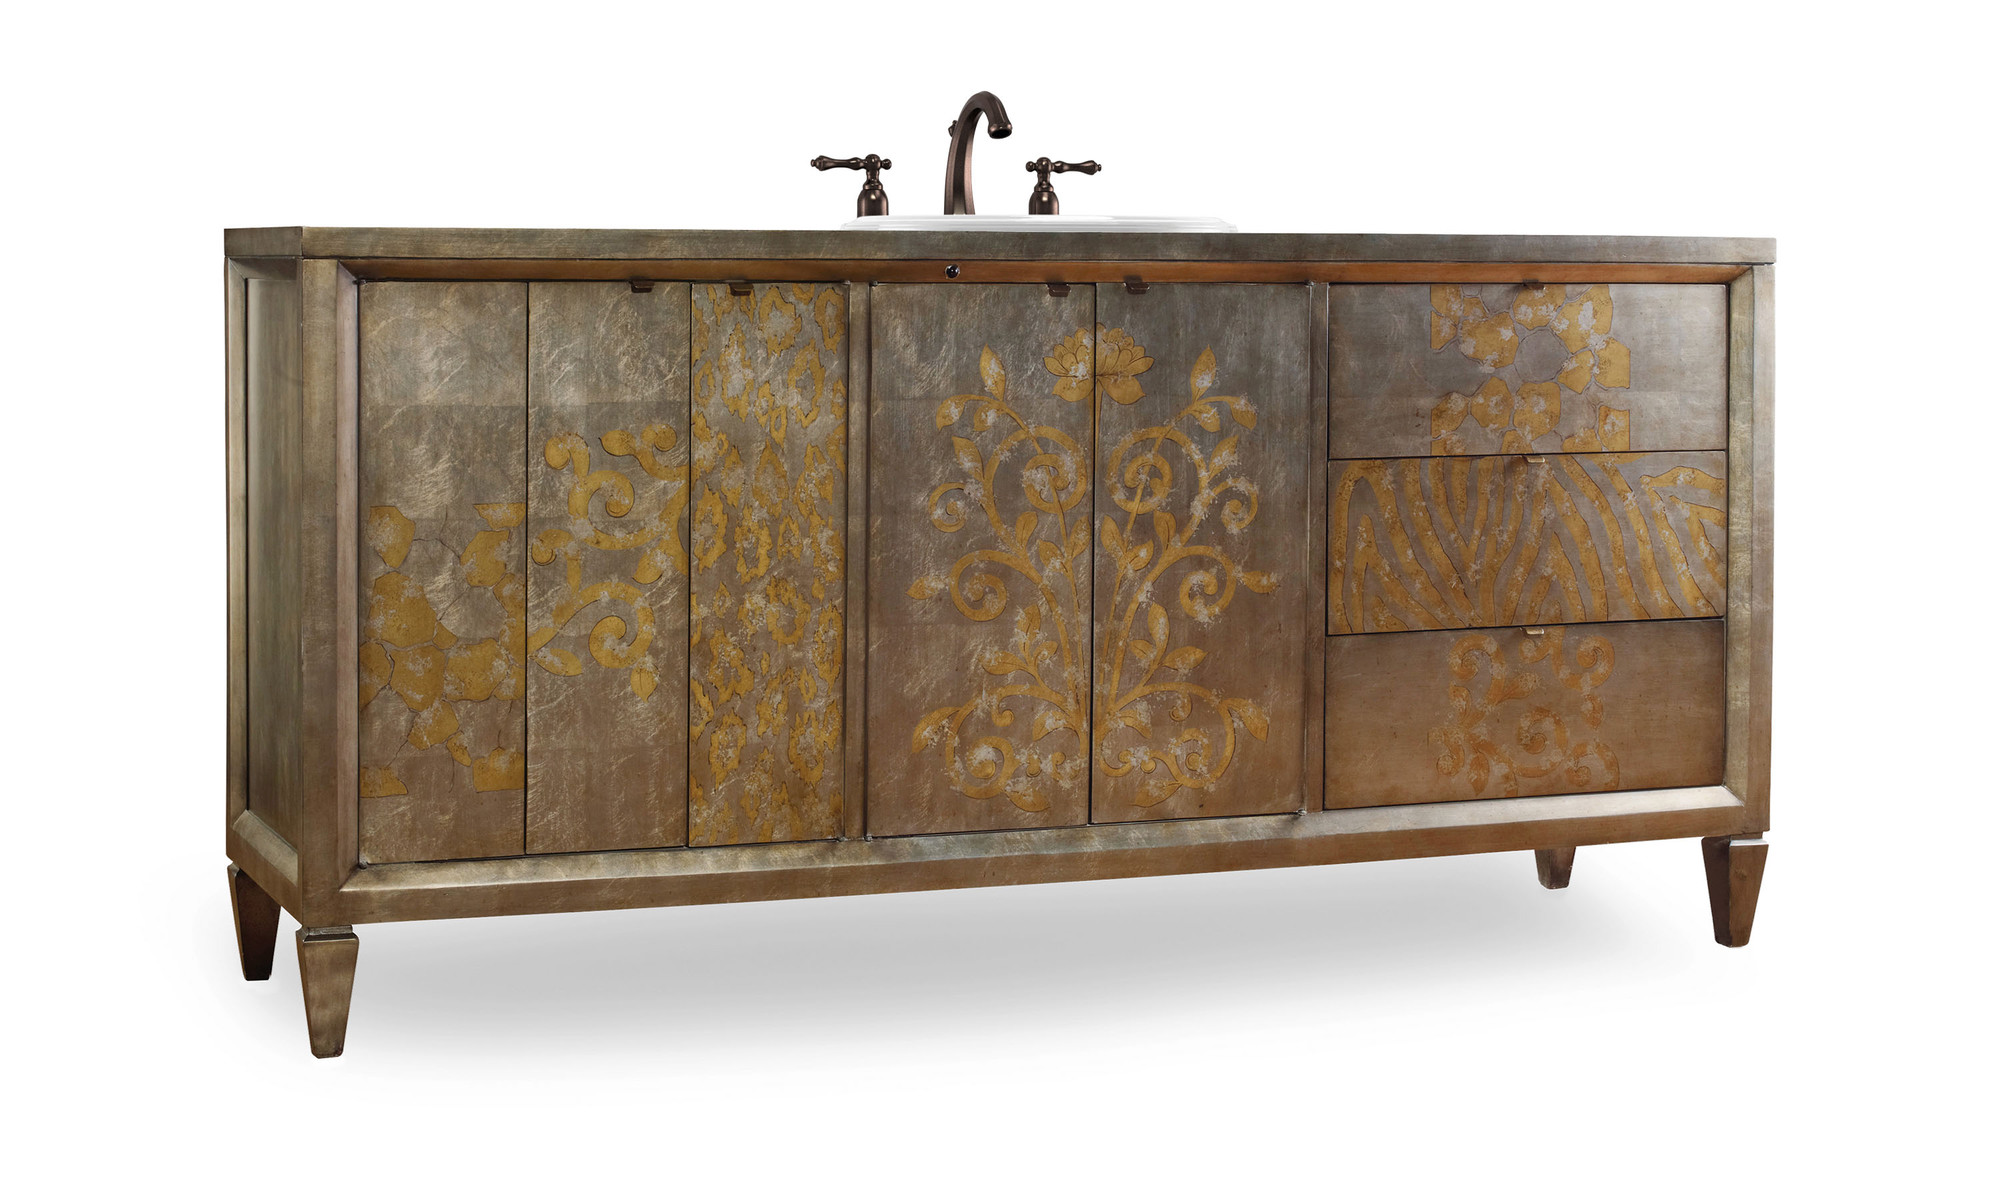 Catherine 76 inch Hall Chest Bathroom Vanity by Cole & Co. Designer Series